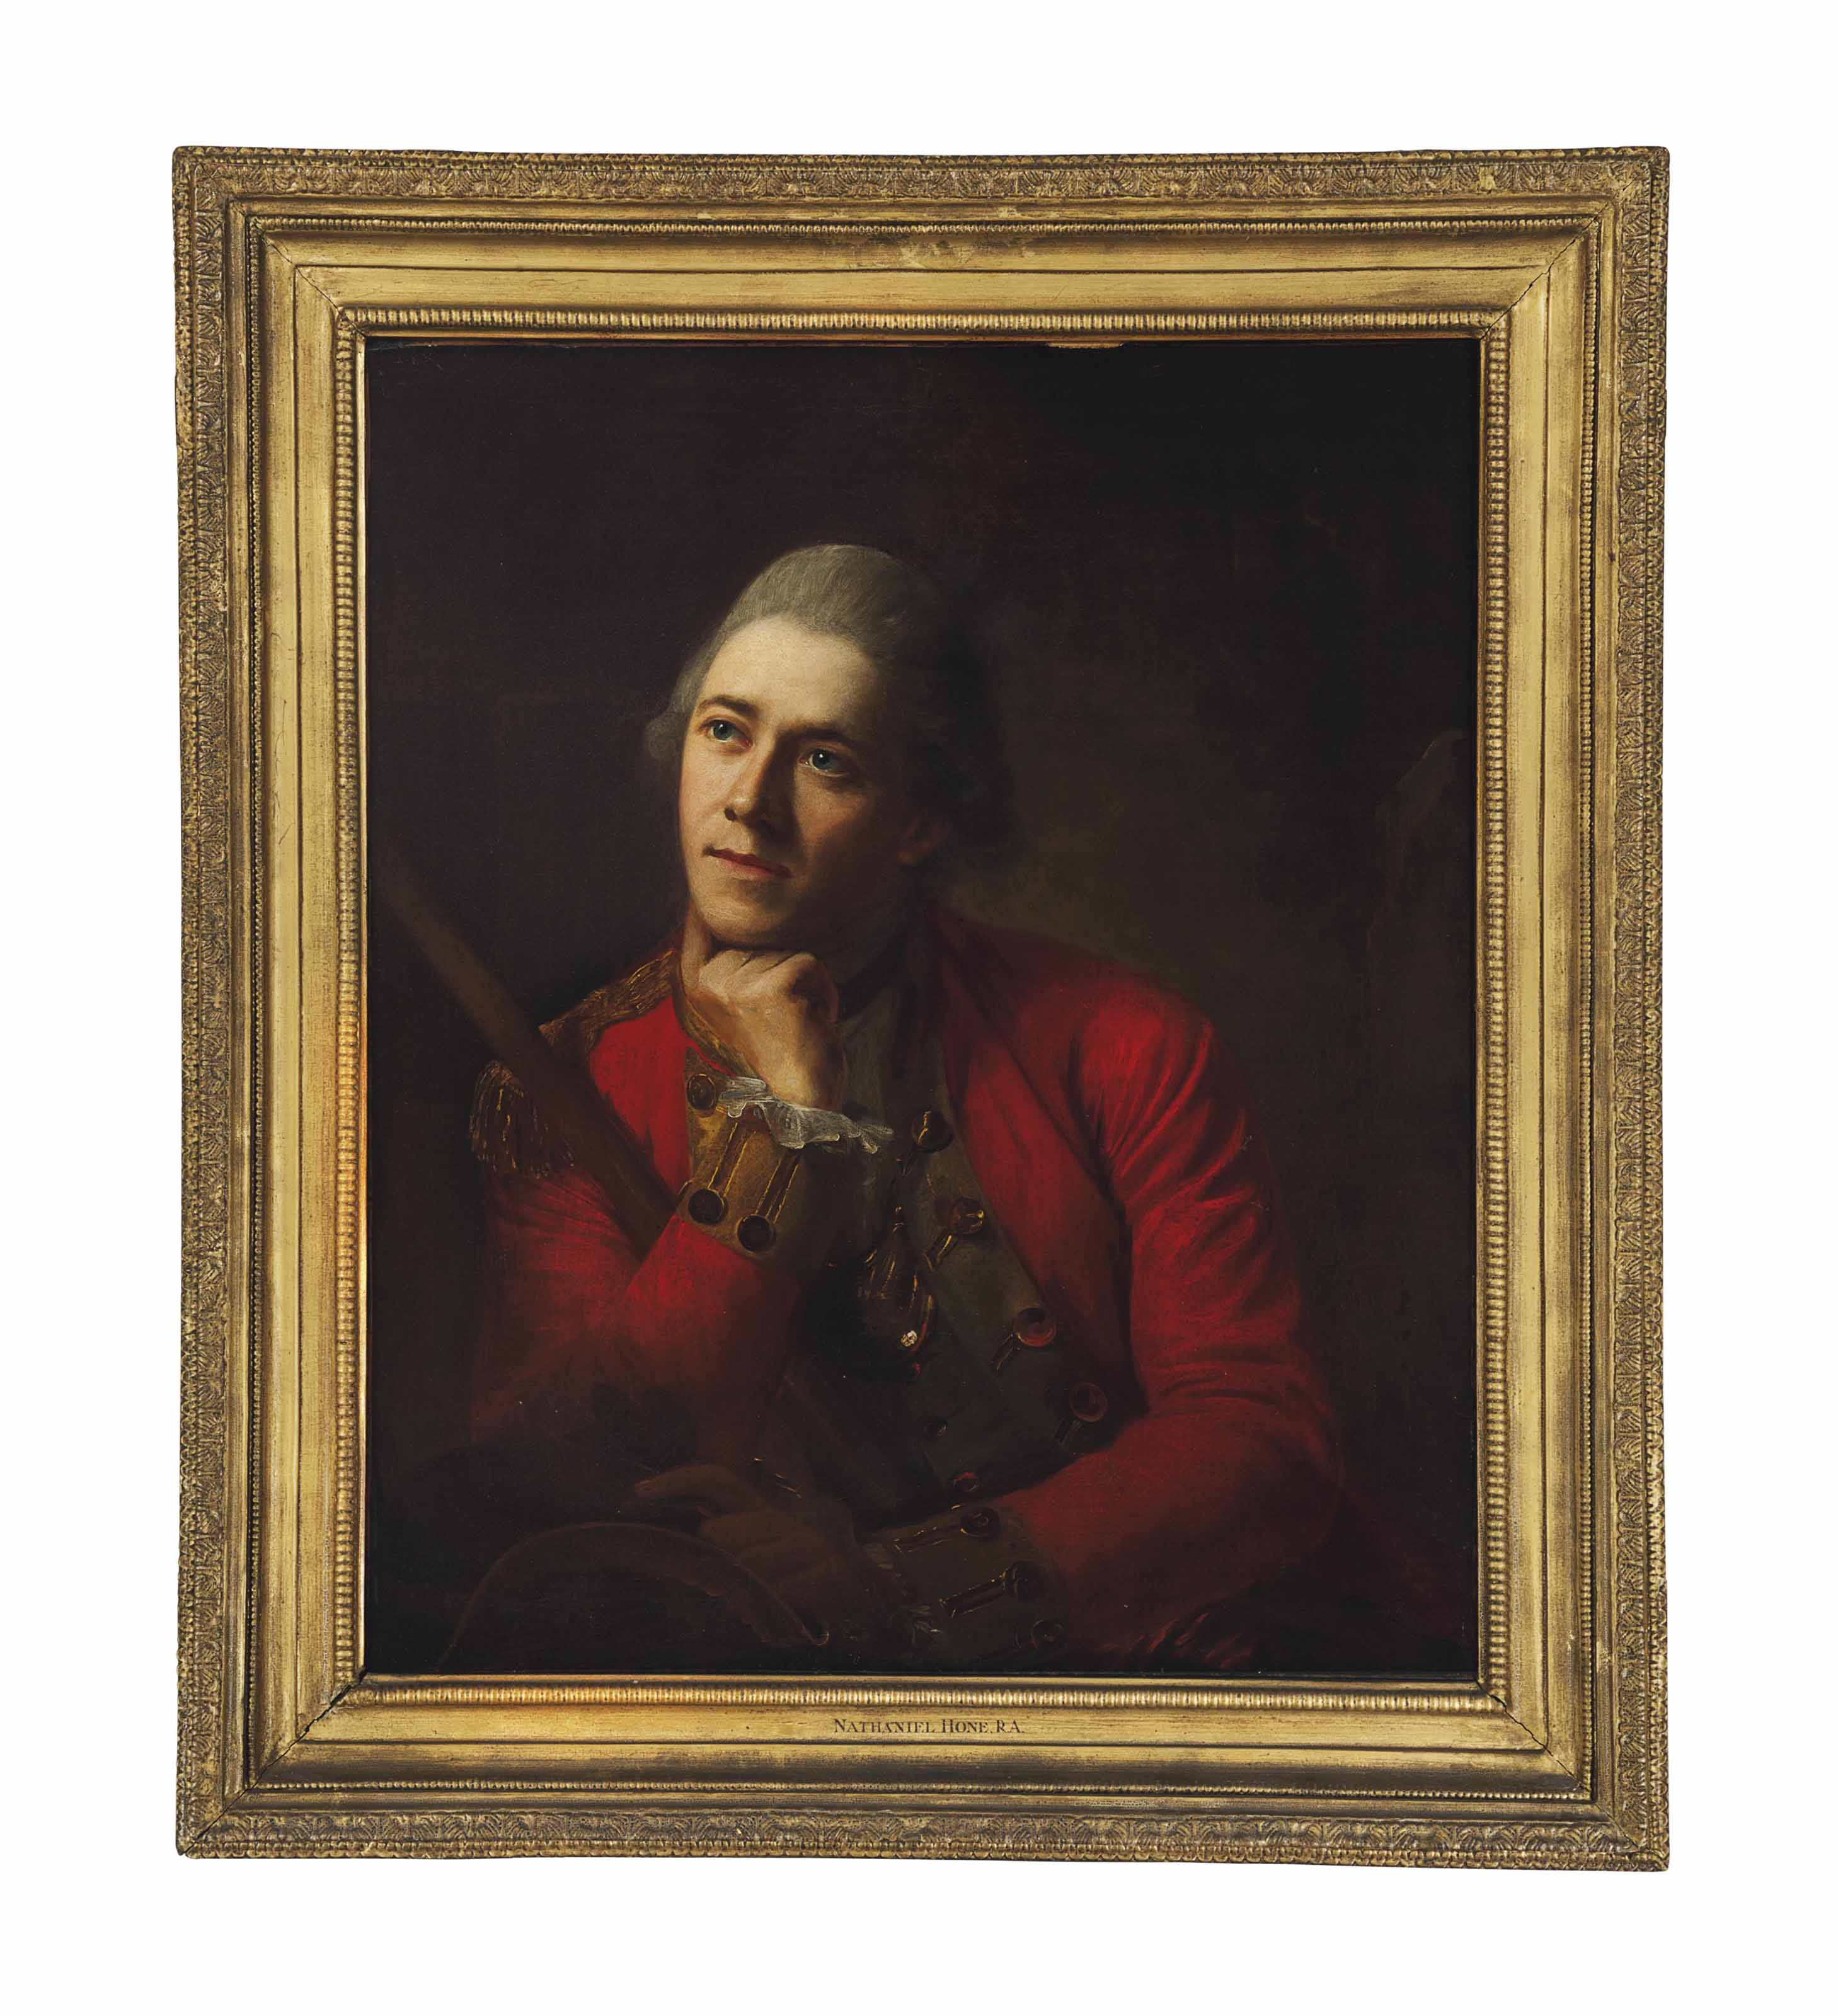 Portrait of the artist's son, Nathaniel Hone, Captain of the Wiltshire Militia and the 12th Foot (Suffolk Regiment), half-length